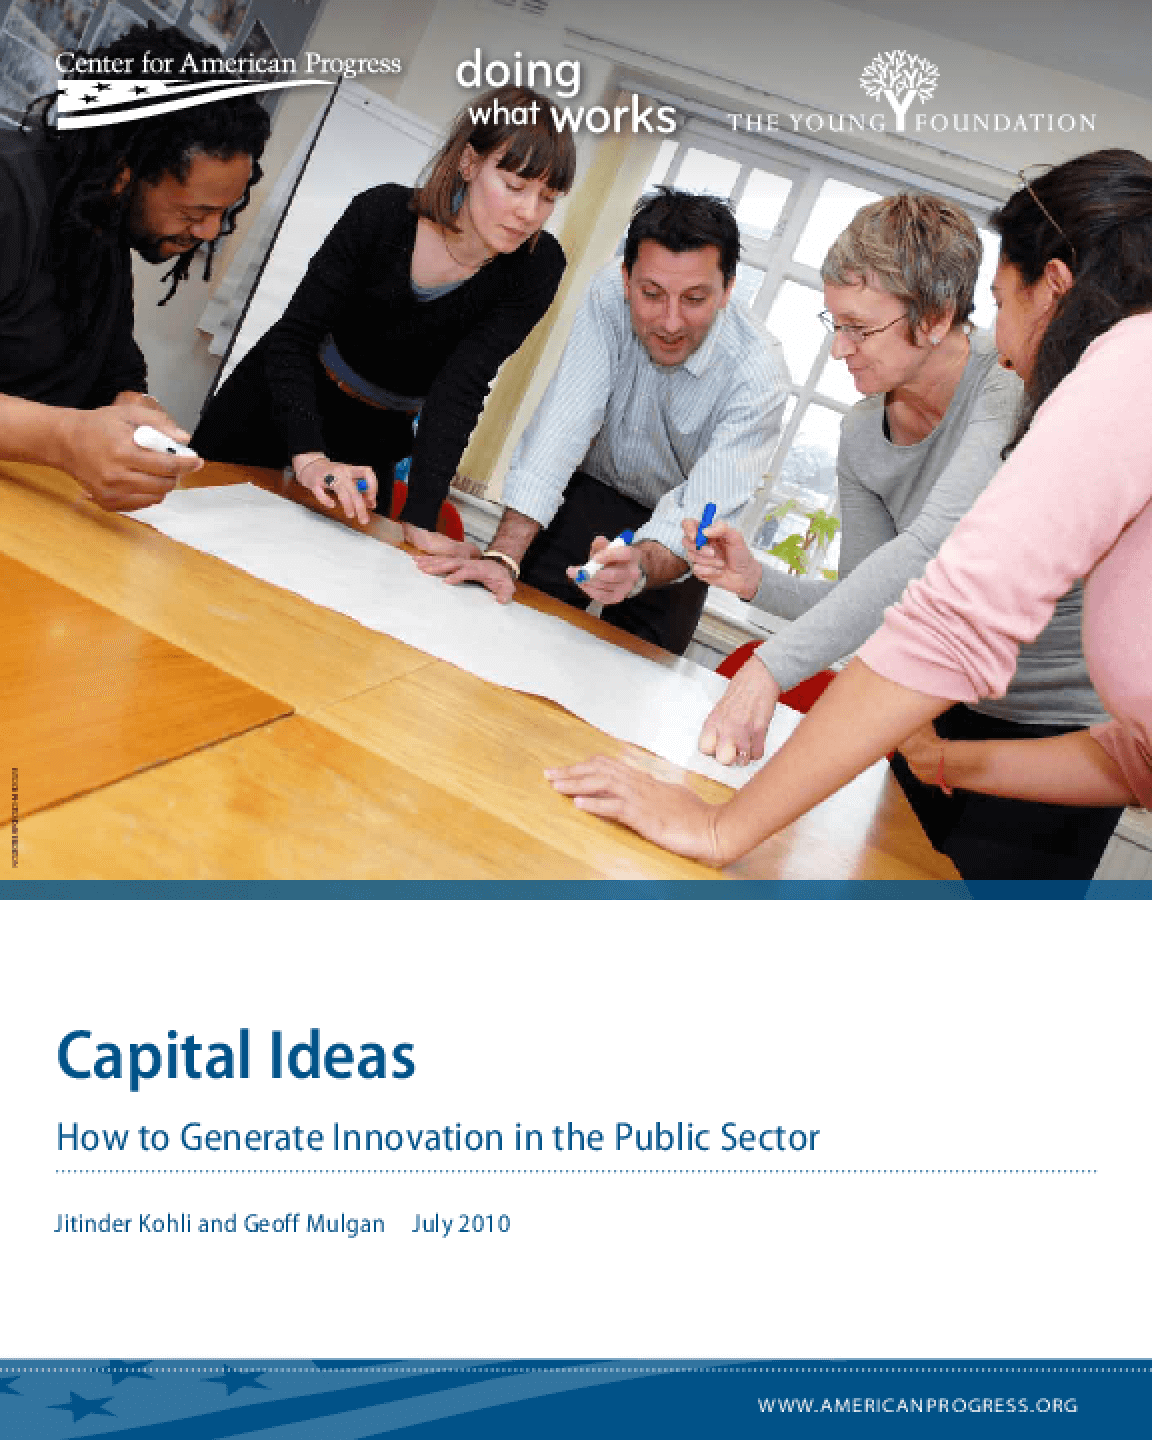 Capital Ideas: How to Generate Innovation in the Public Sector